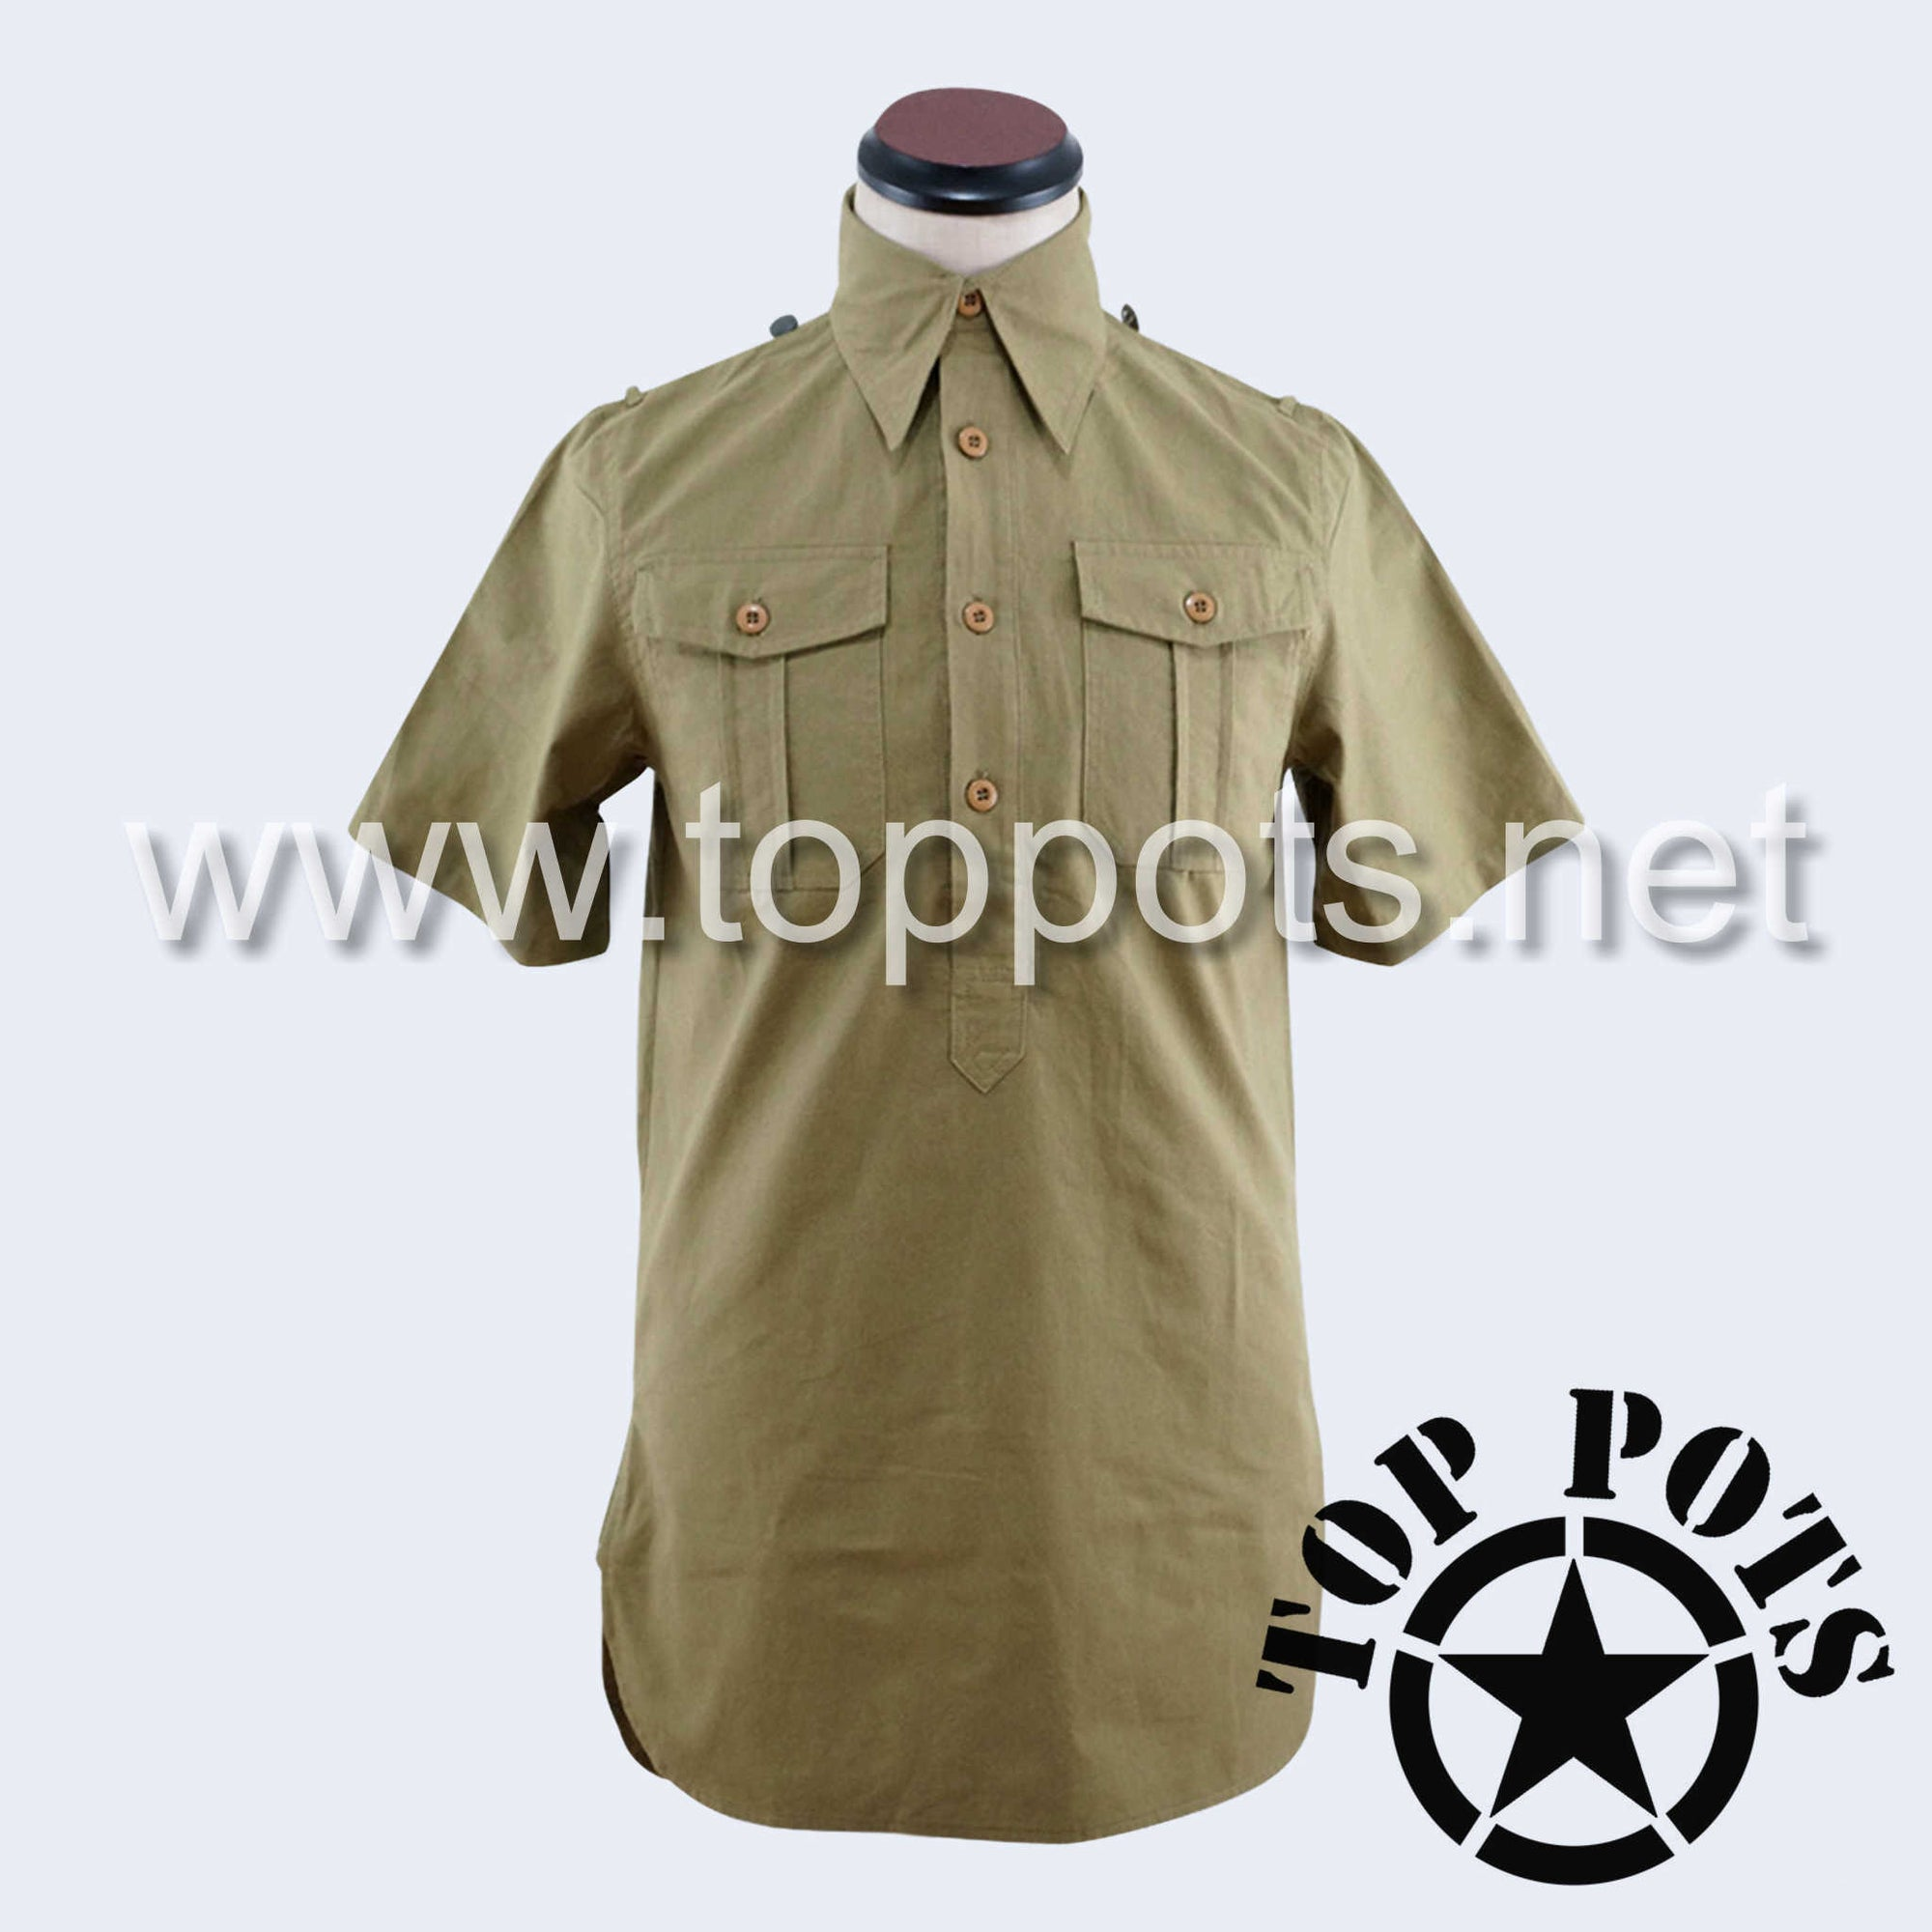 WWII German Army DAK Afrika Korps Heer Wehrmacht Uniform Short Sleeve Service Shirt - Sand Khaki Tan